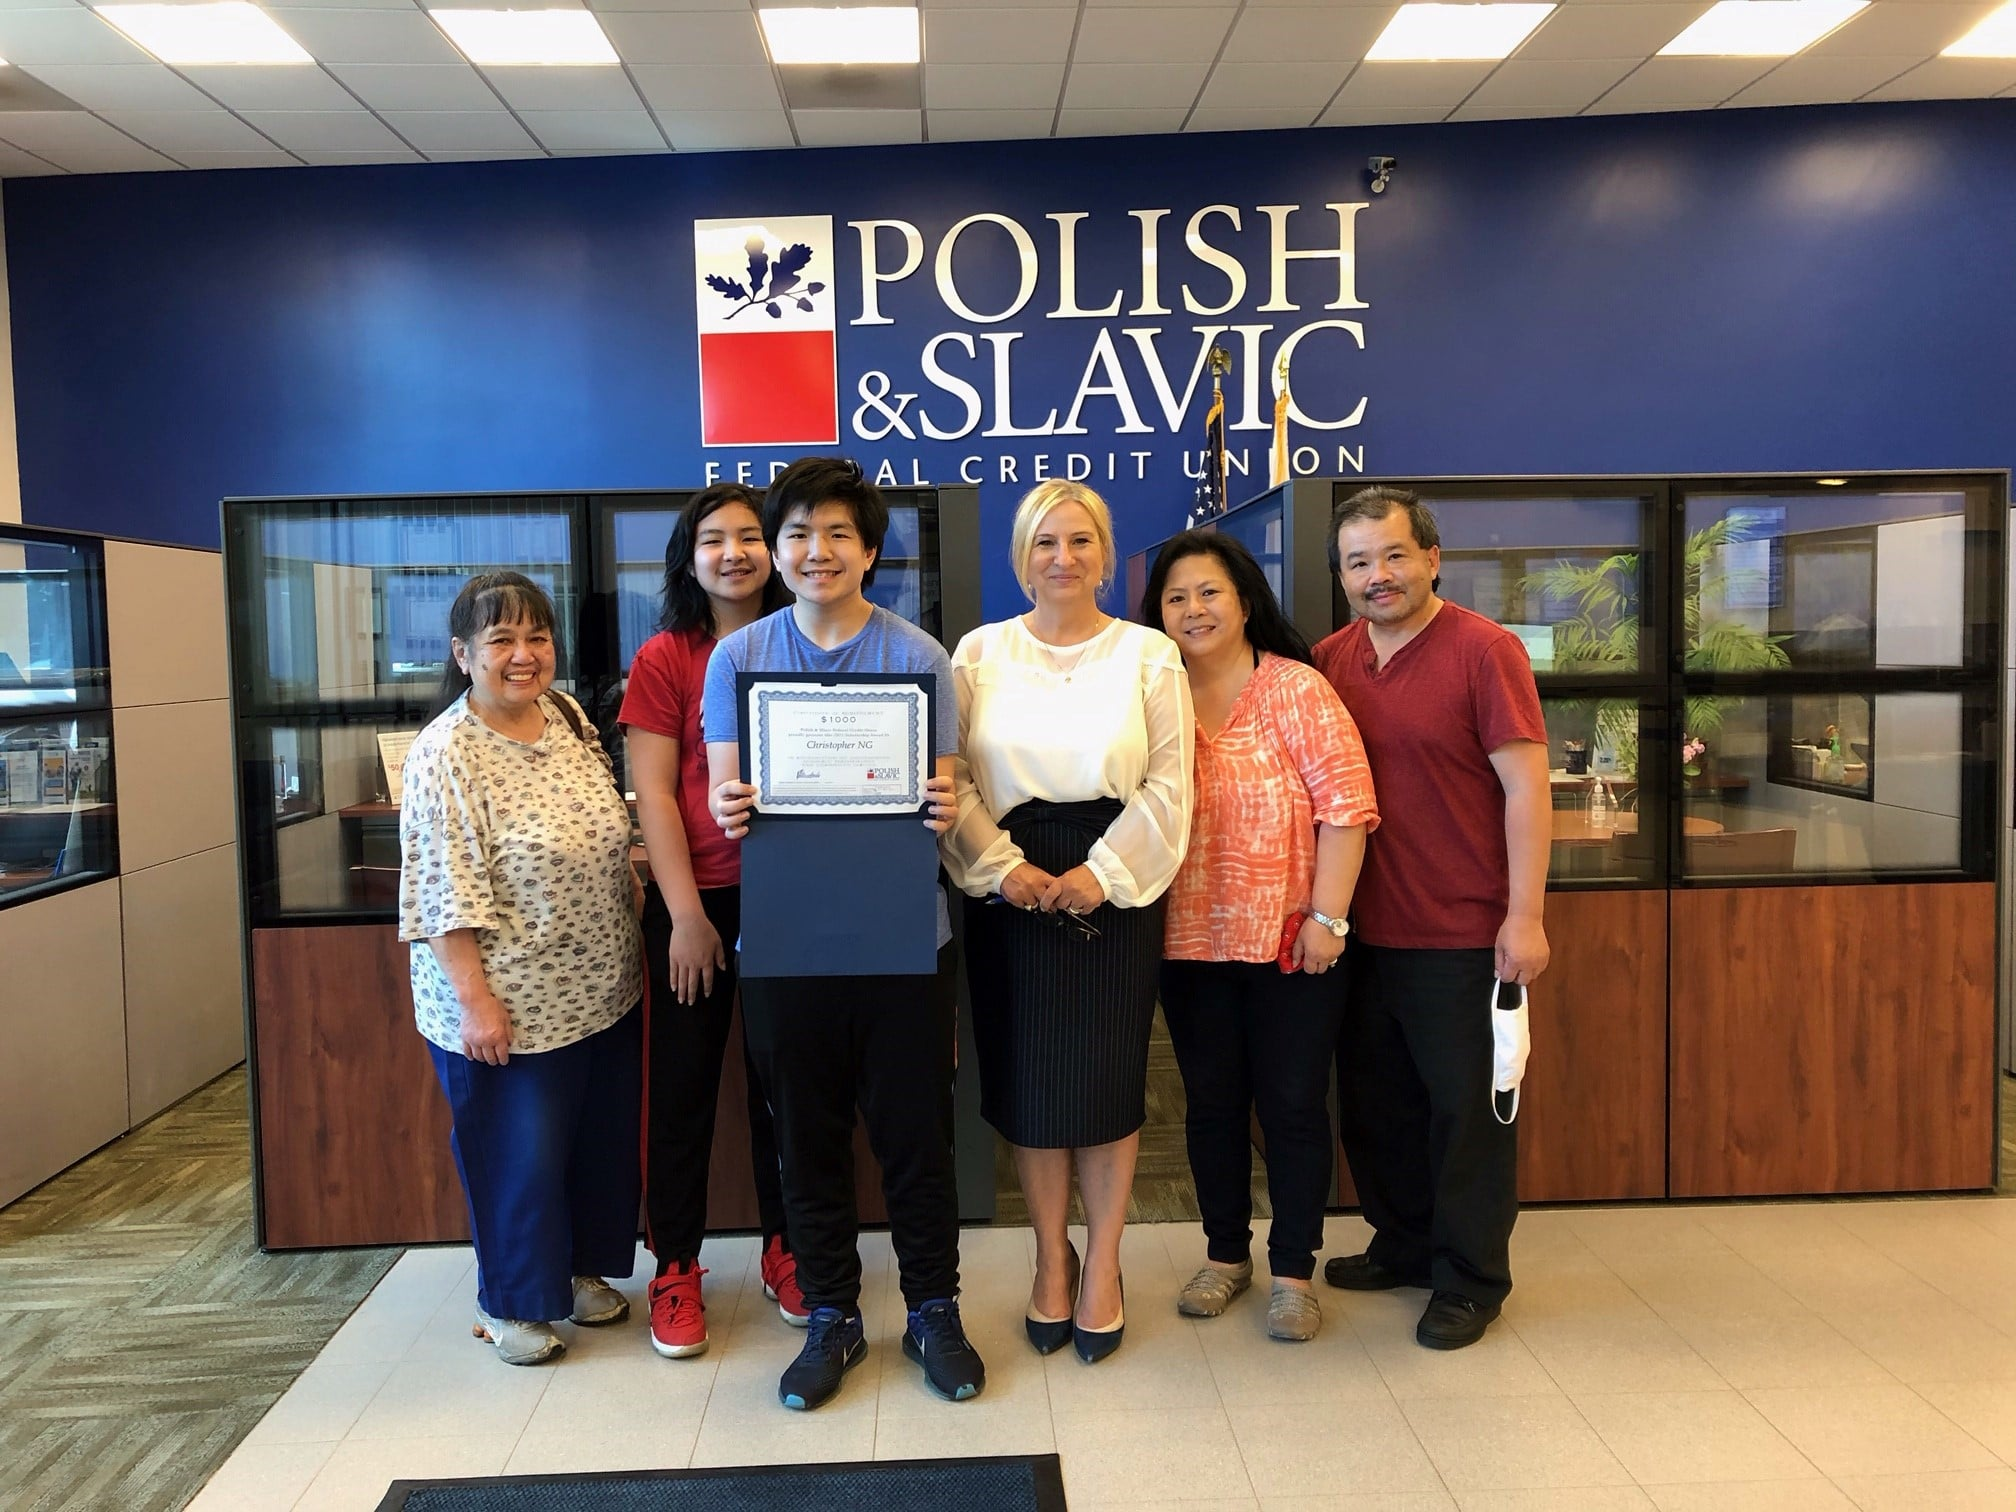 421 Students, Young PSFCU Members, Awarded Scholarships in 2021